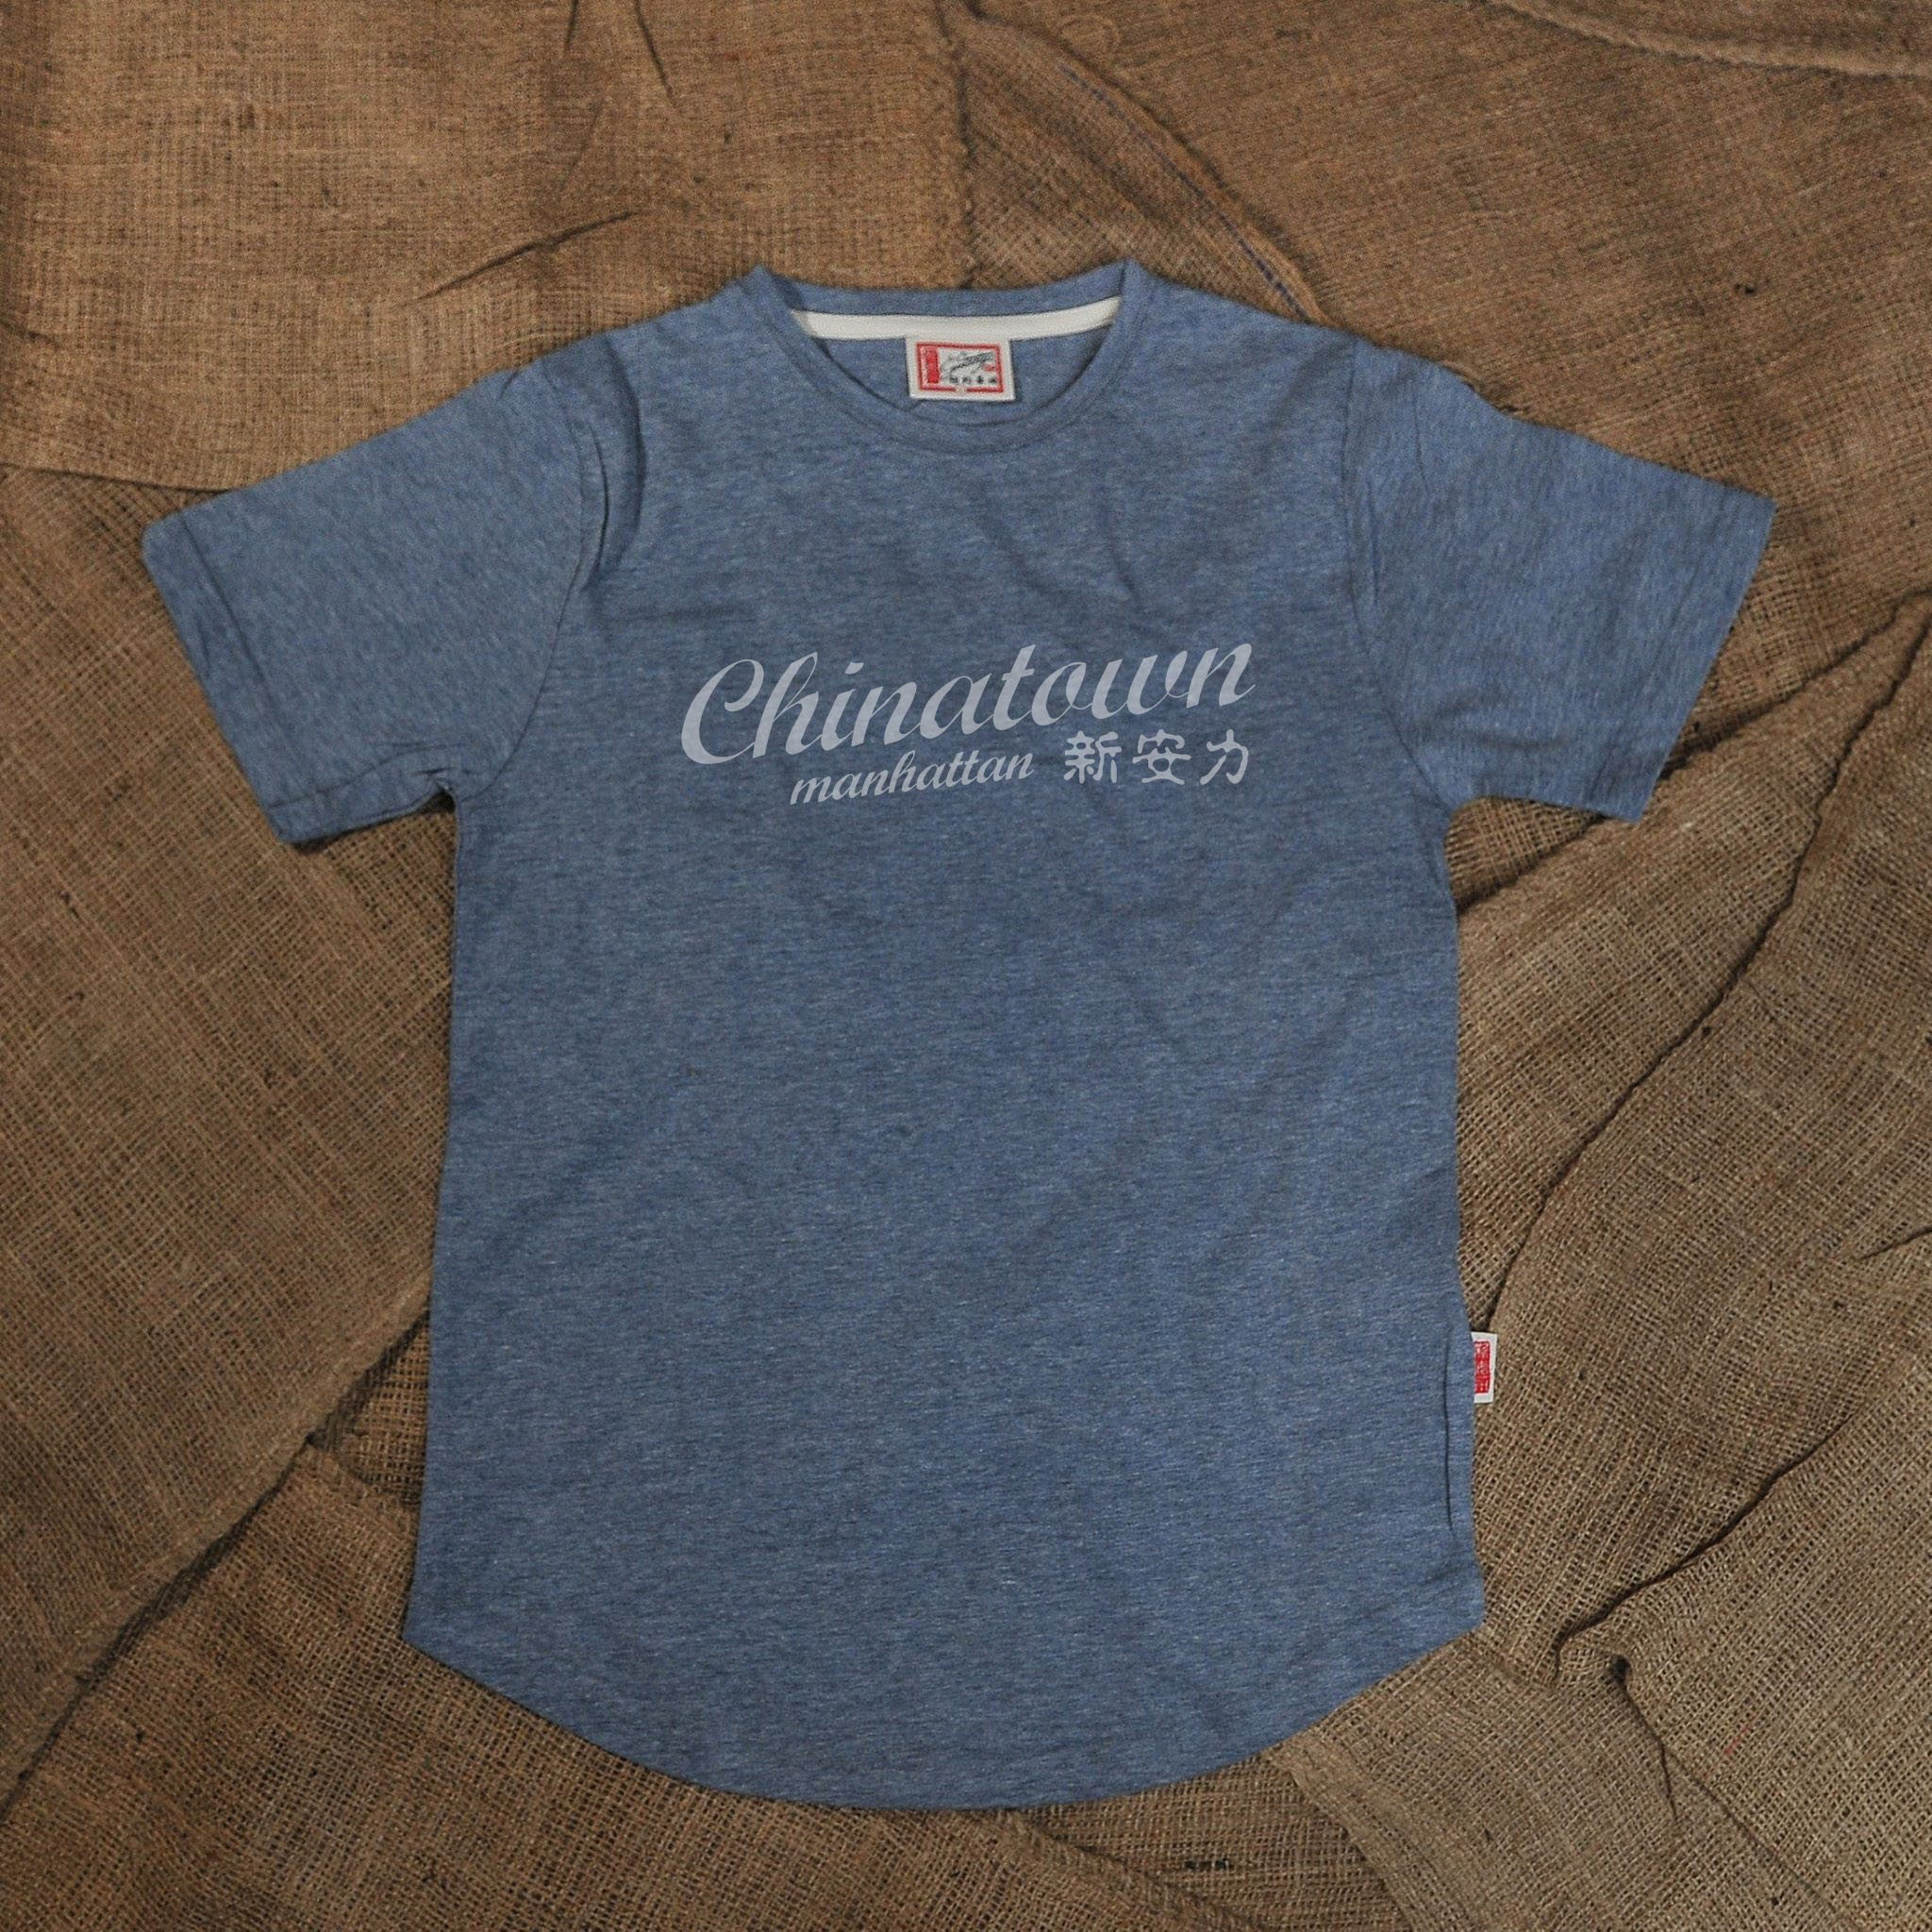 CHINATOWN MANHATTAN TSHIRT (BLUE) - CYNONYC Chinatown Clothing Company